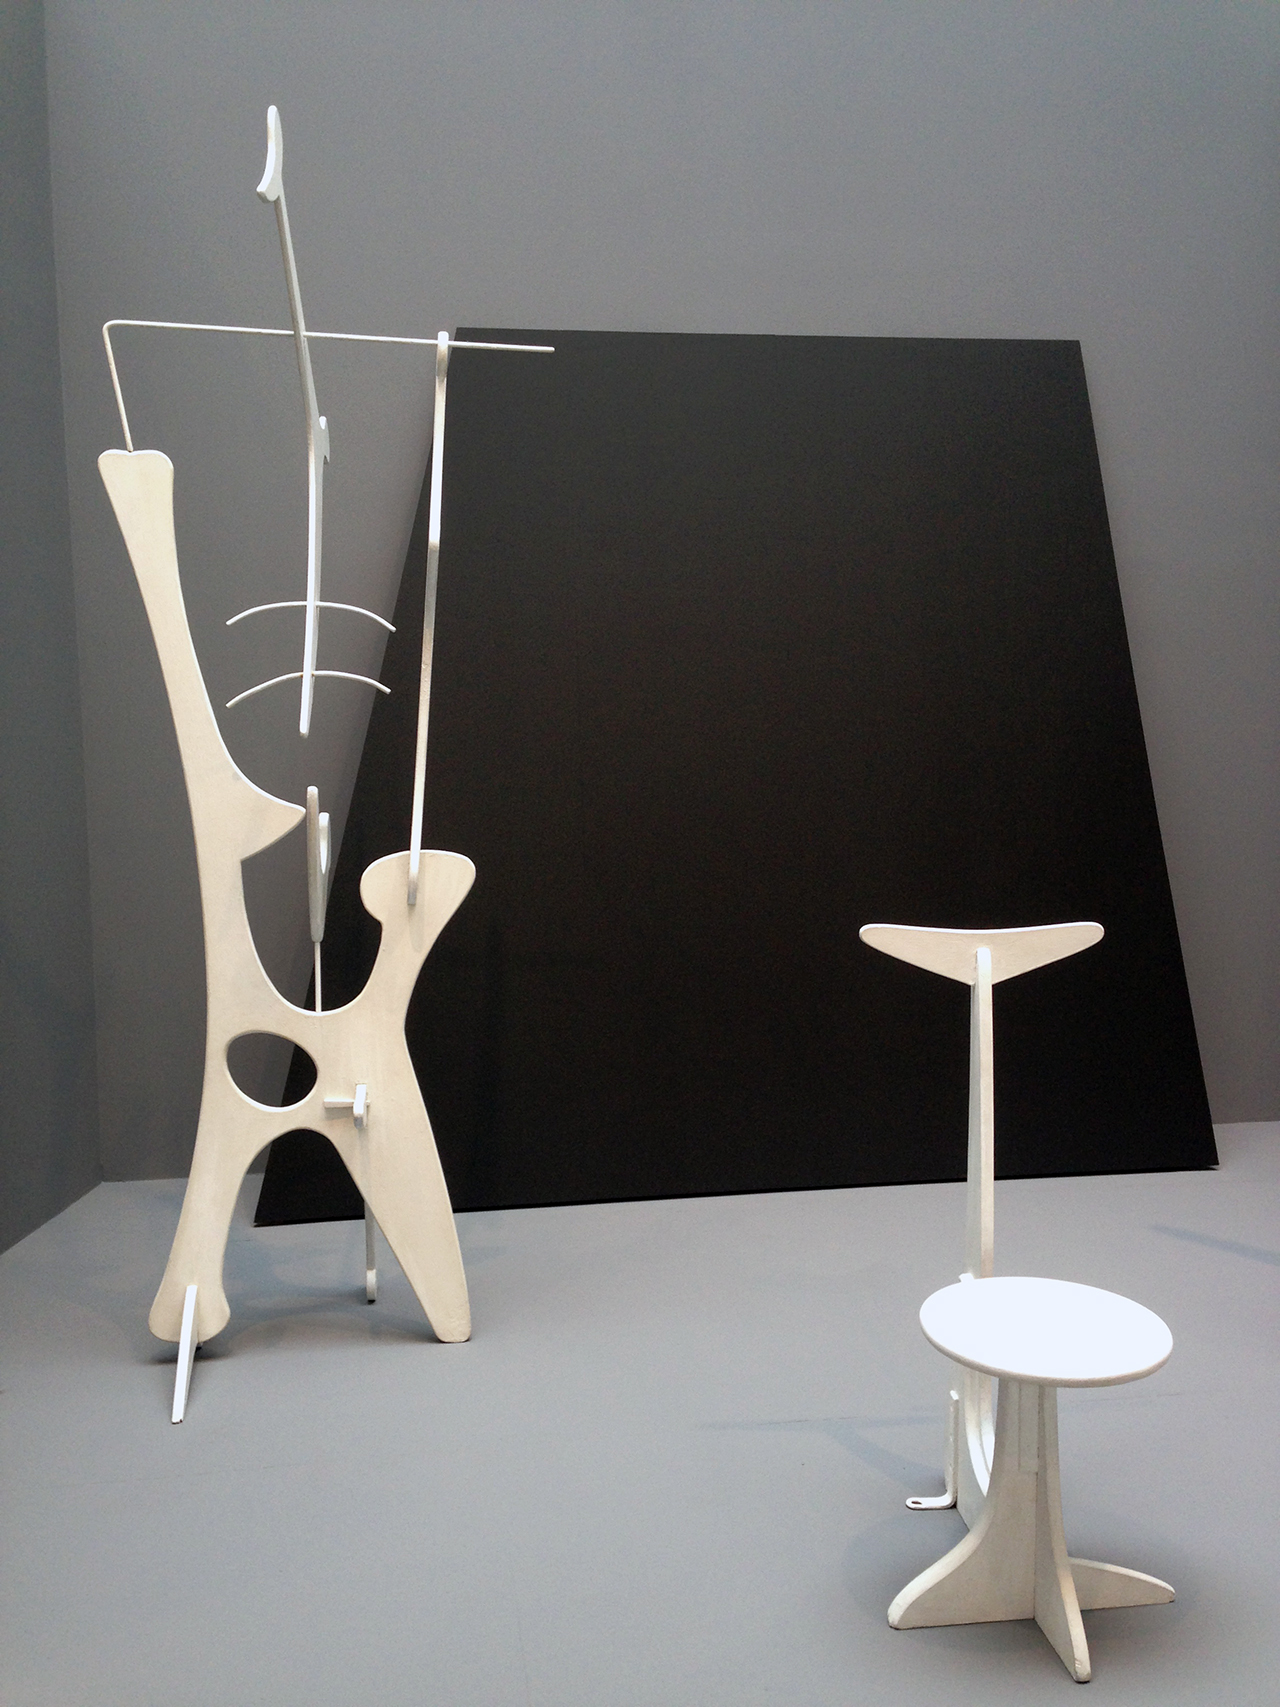 Installation view, 'Isamu Noguchi: Variatons' at Pace Gallery (click to enlarge)